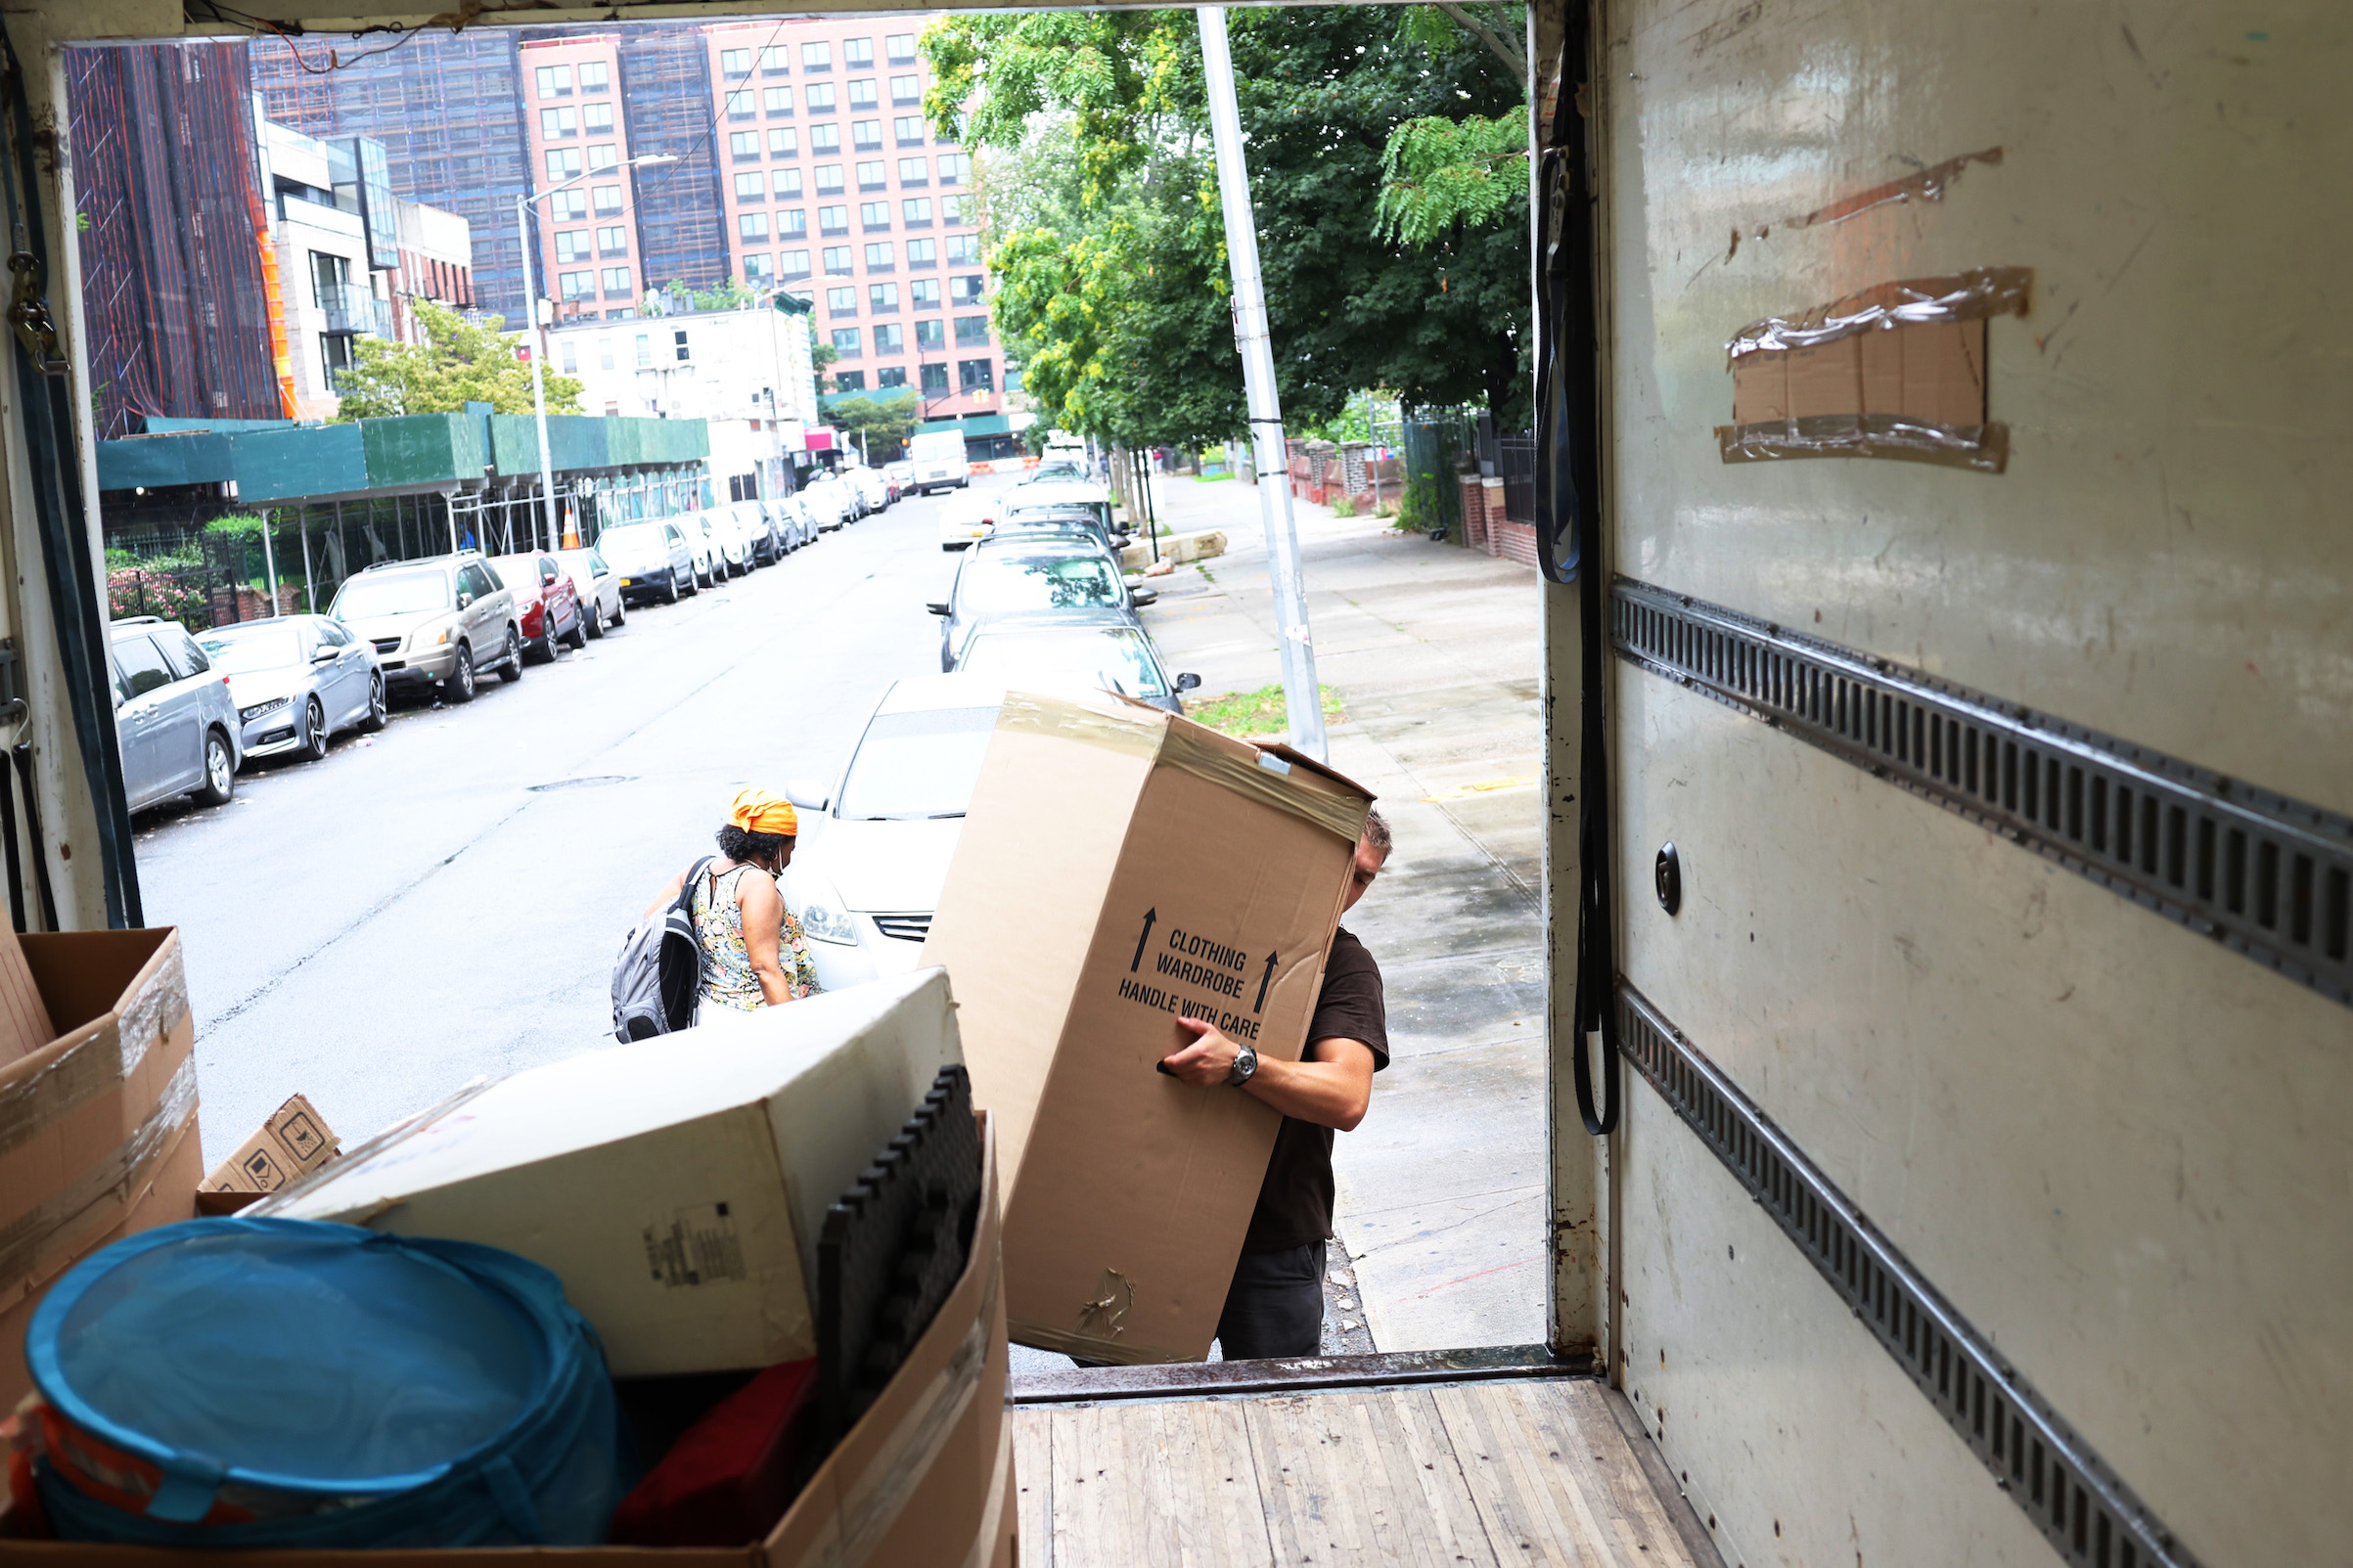 A mover with Rabbit Movers places the belongings of a customer unto a moving truck on Aug. 13, 2020 in New York City. Moving companies are increasingly trying to keep up with higher demand as an uptick of people are choosing to move from New York City during the COVID-19 pandemic.